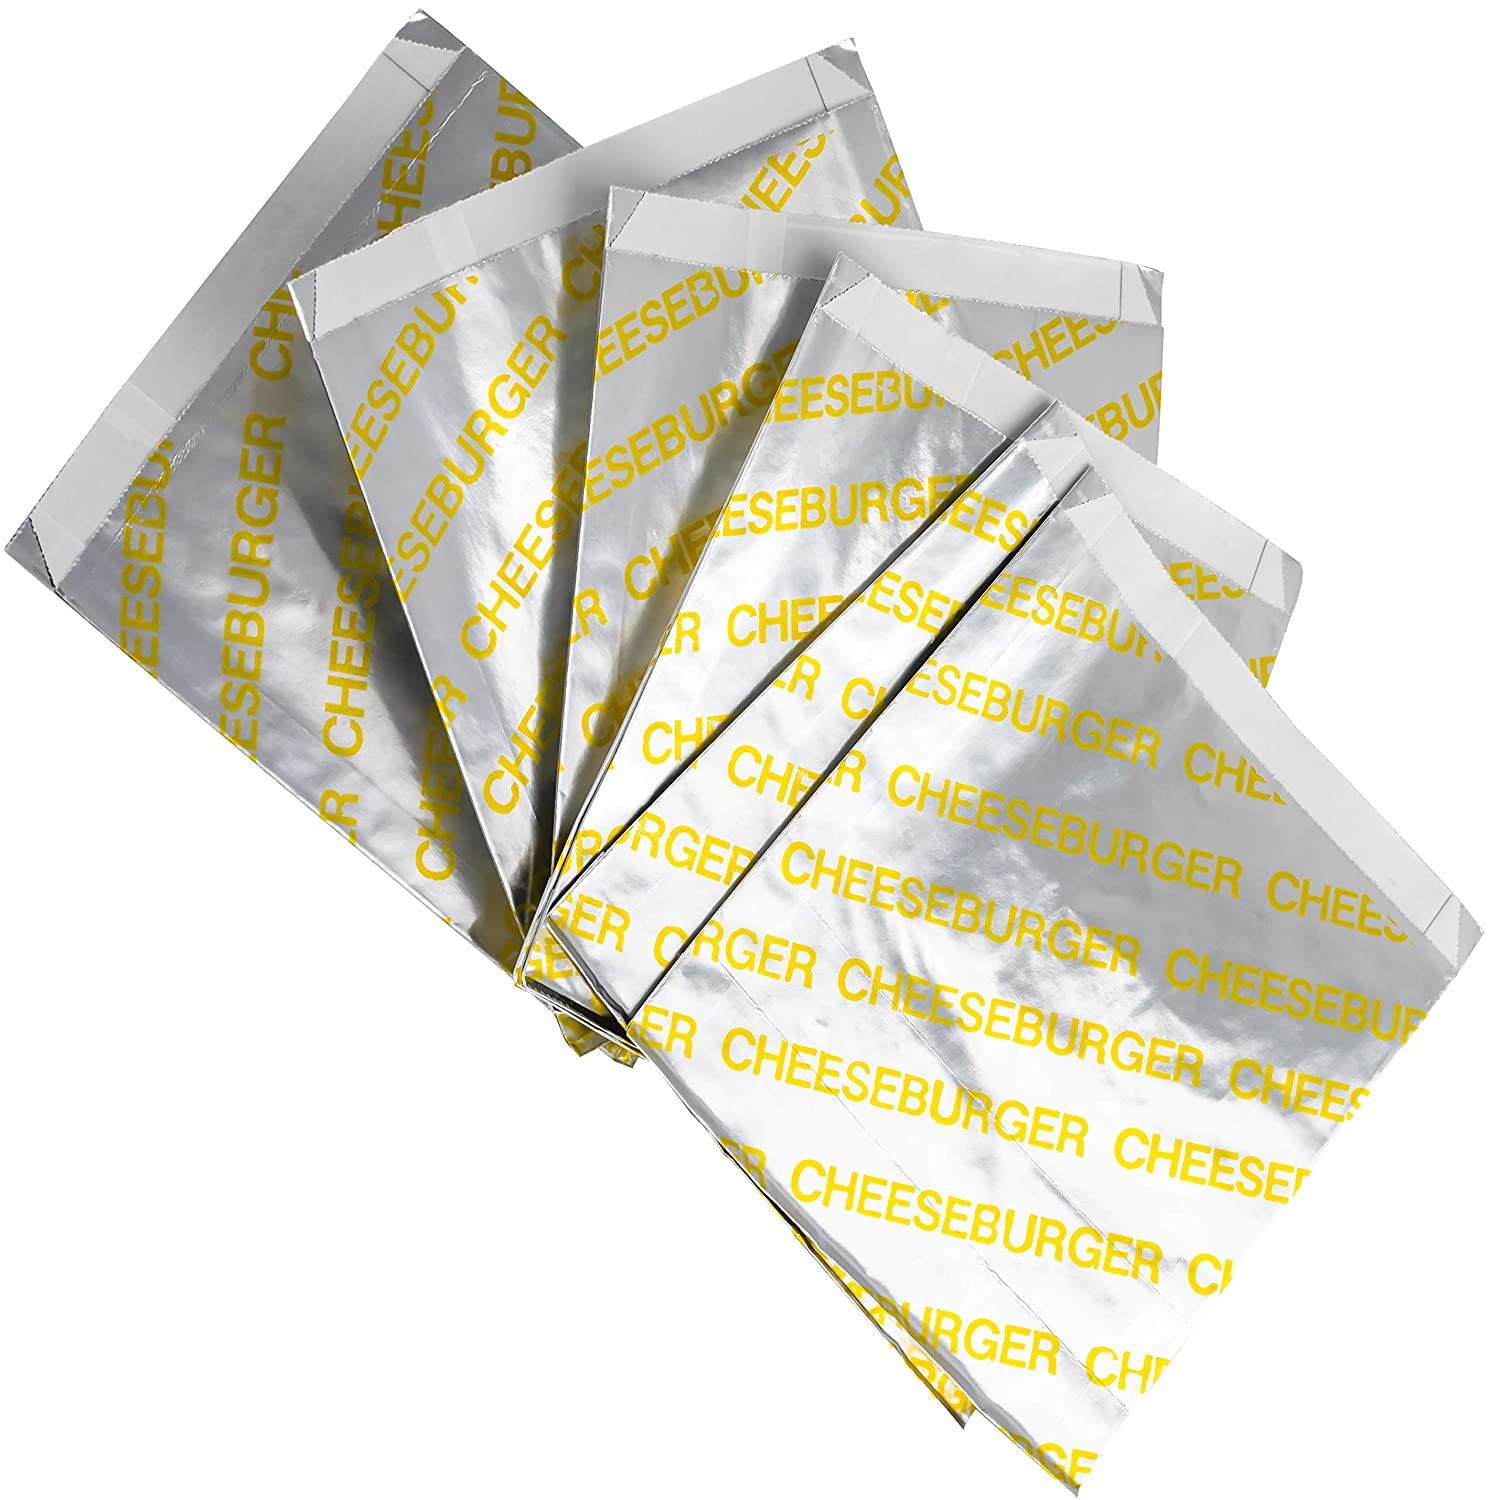 Retro, Grease Proof Burger Wrappers Combo 10Pk. Insulated, Pro Quality Bulk Cheeseburger Bags are BPA Free. Large, Allergen Friendly BBQ Foil Paper Great Cooking Supply for Themed Party